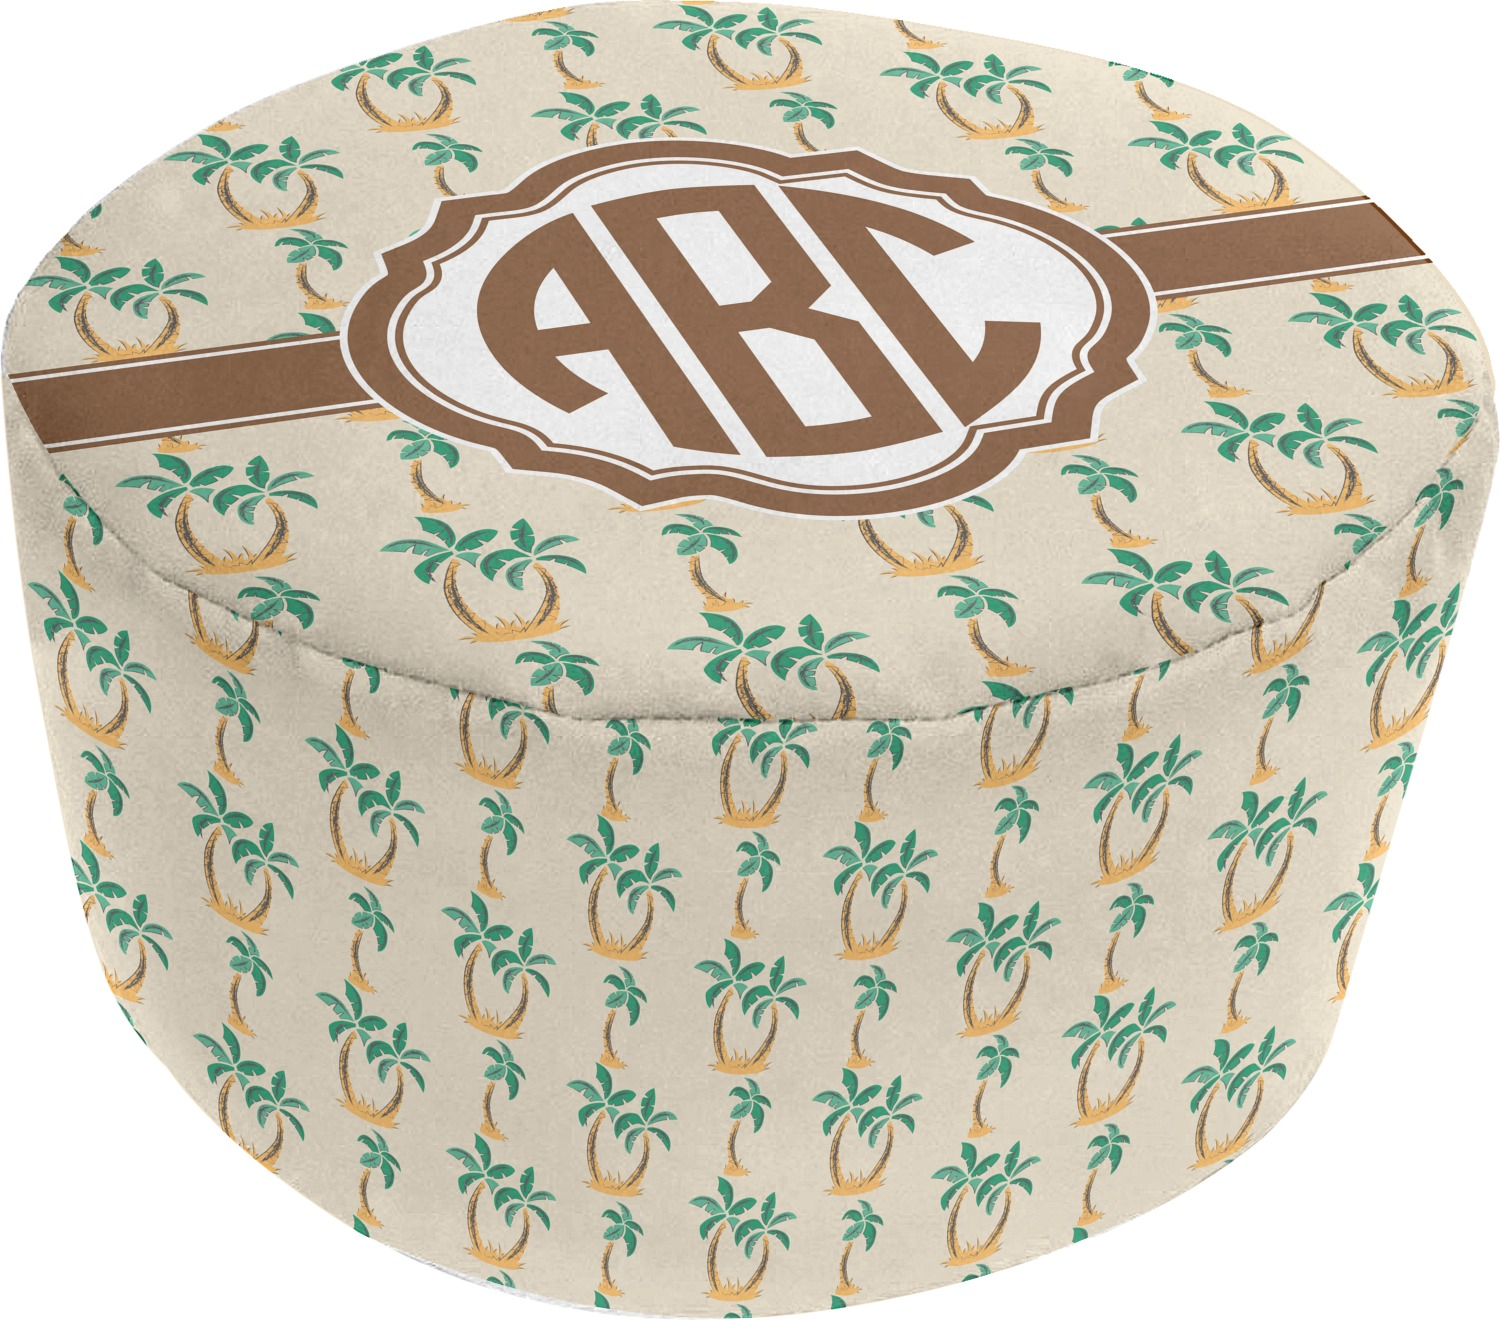 palm trees round pouf ottoman personalized youcustomizeit. Black Bedroom Furniture Sets. Home Design Ideas